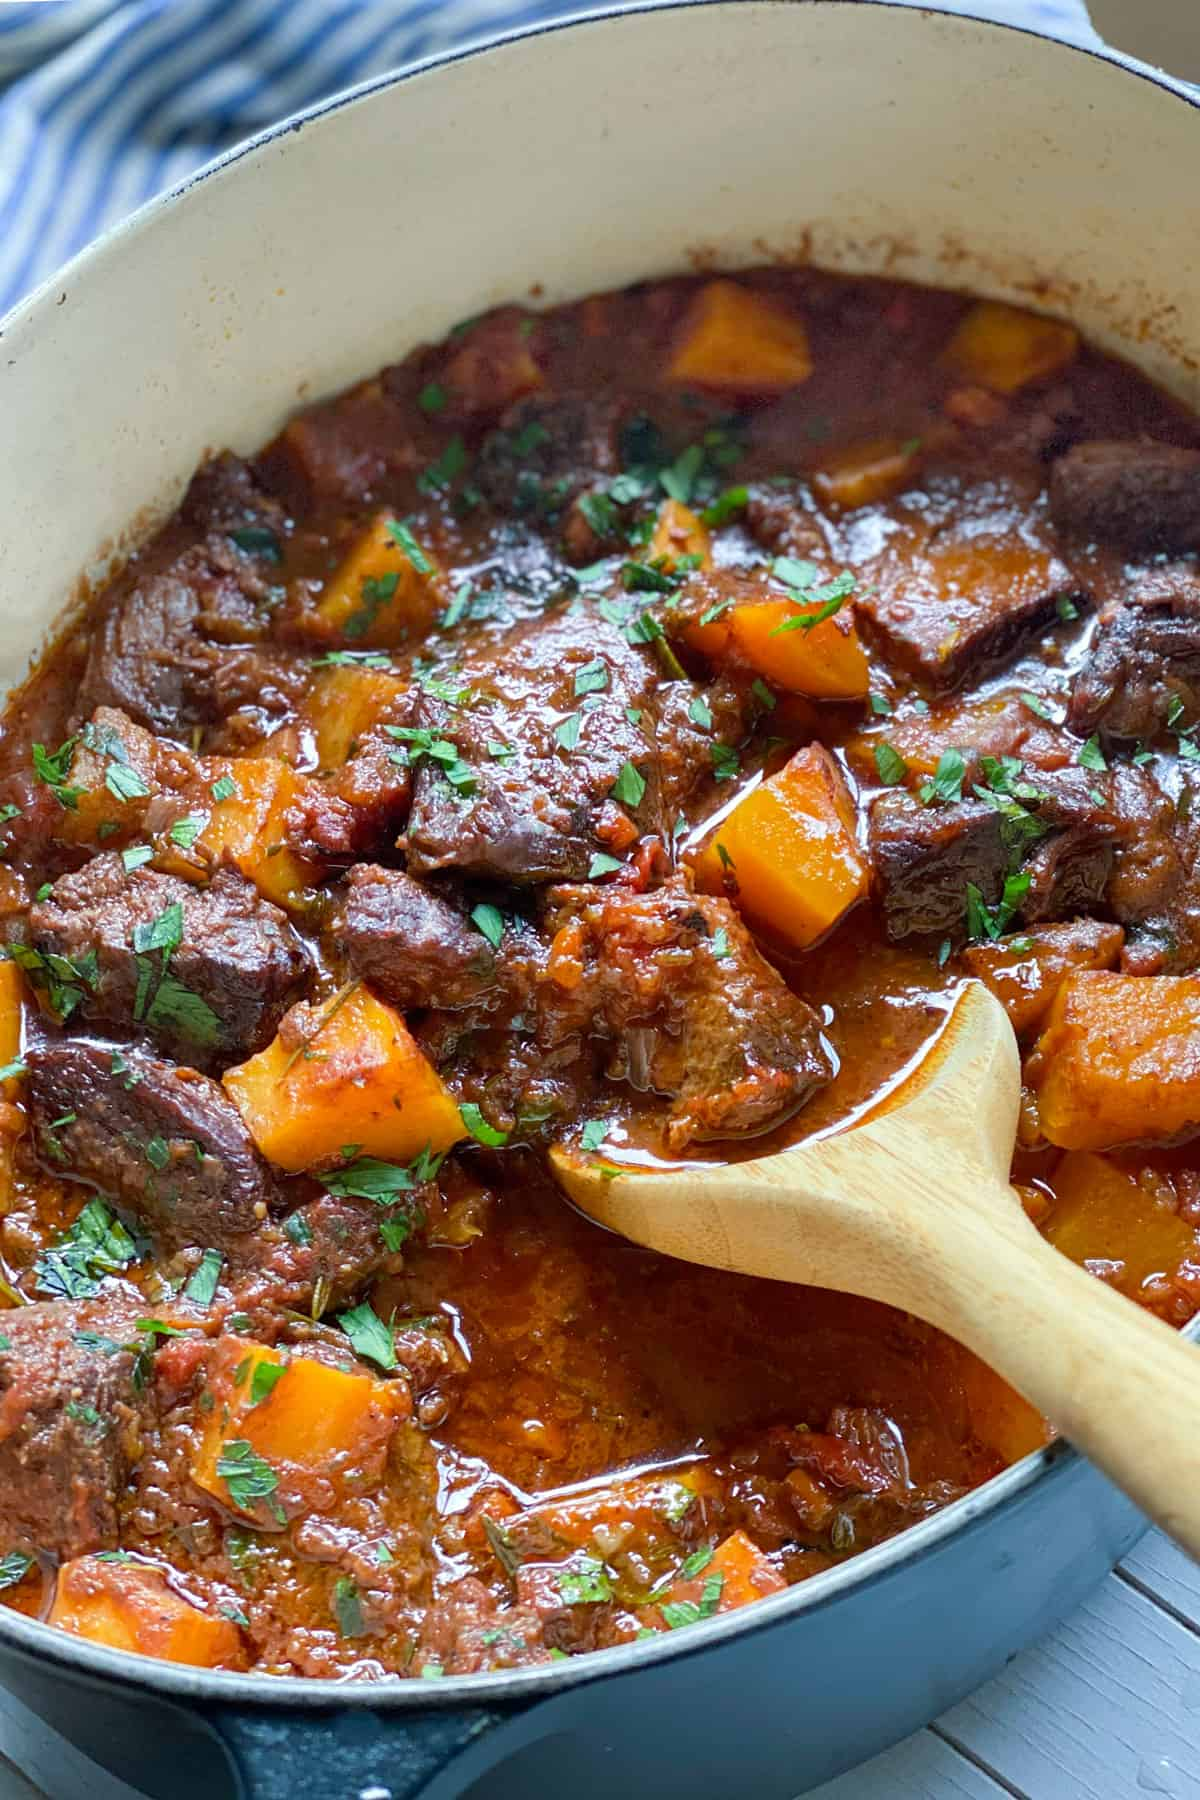 A dutch oven filled with a stew of beef short ribs and cubed butternut squash